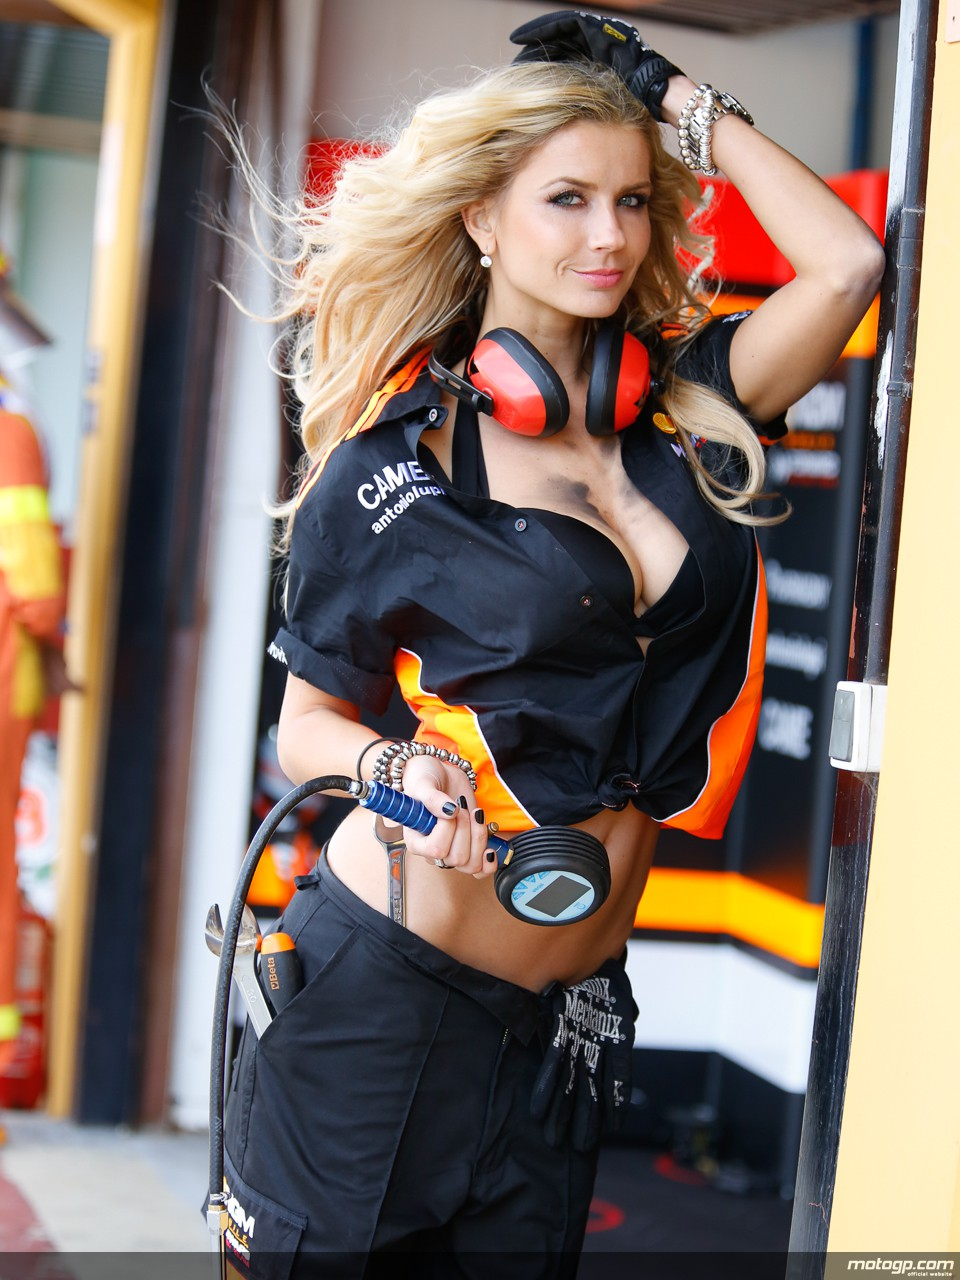 motogp.com · Paddock Girls Photos